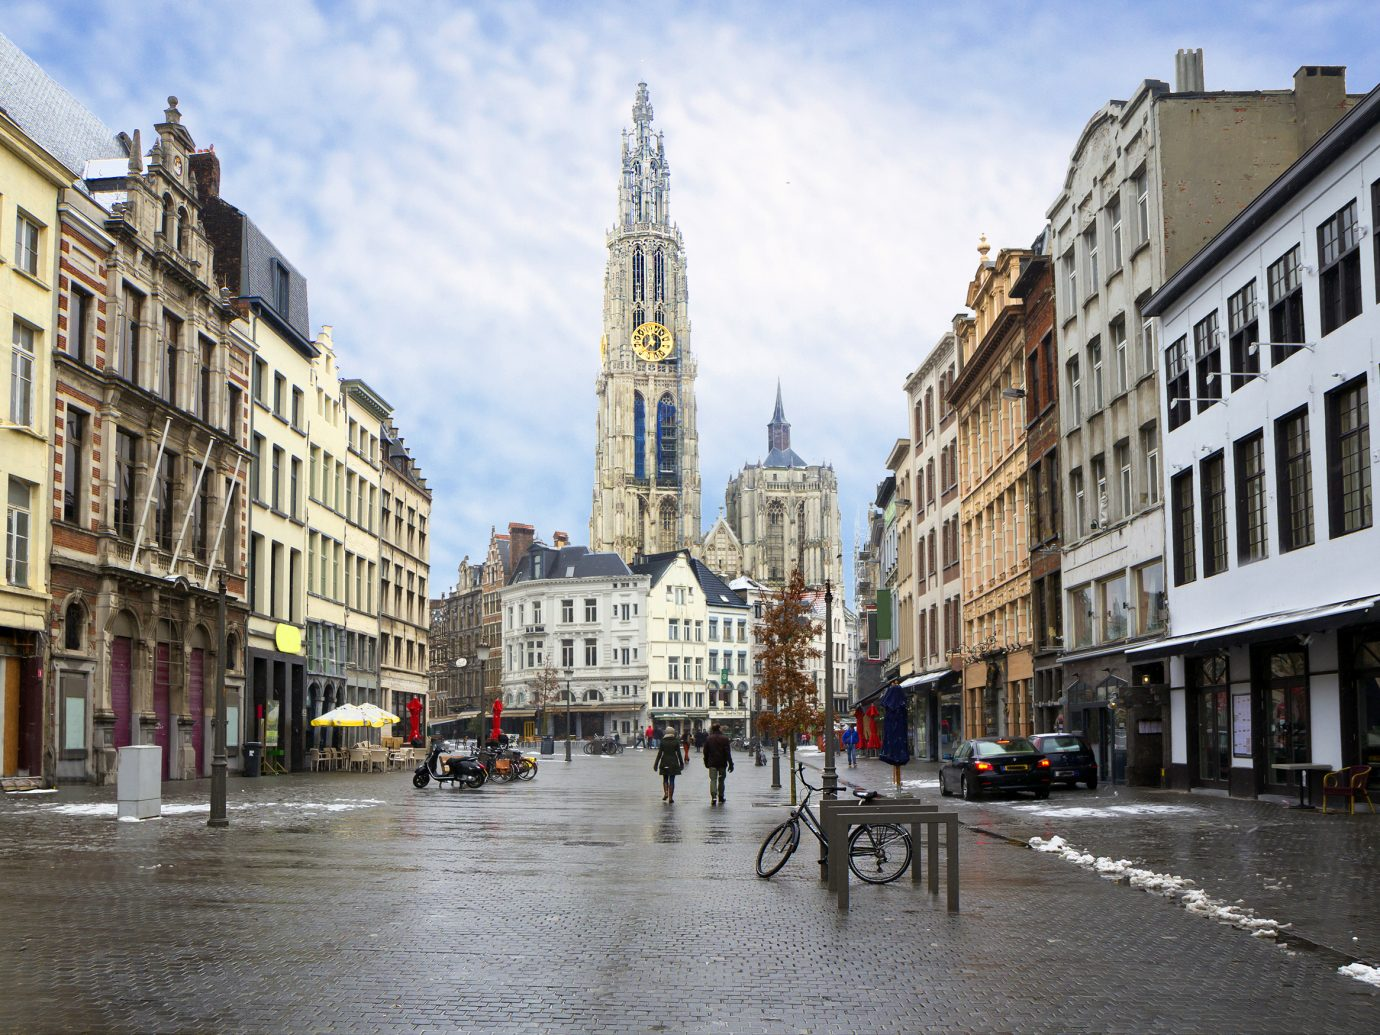 View of The Cathedral of our lady in Antwerp